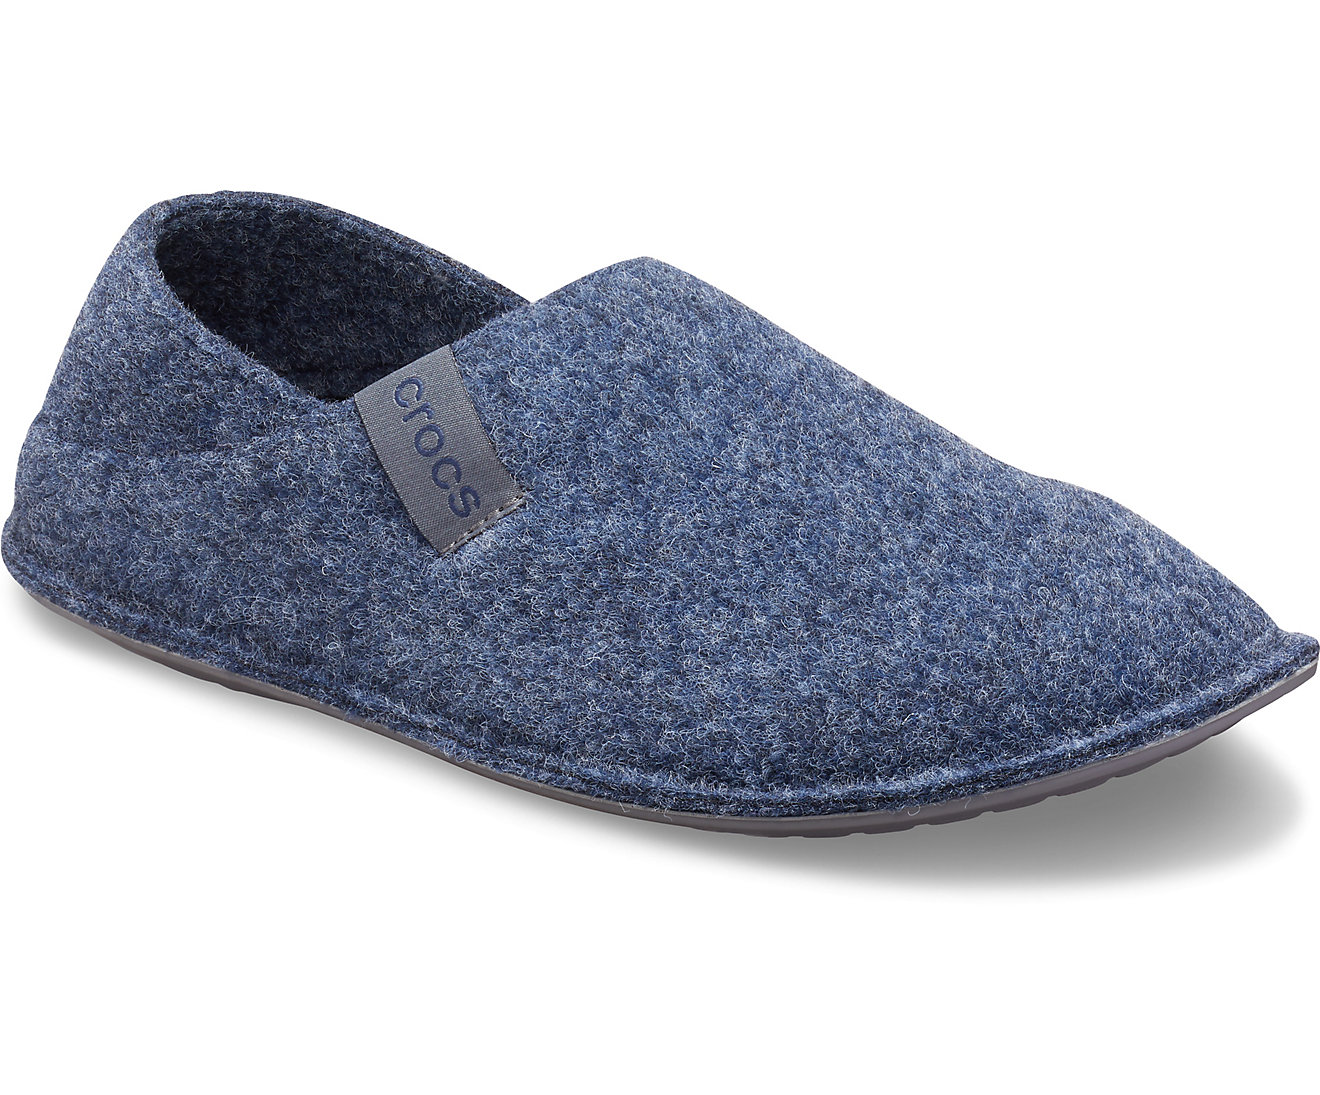 Crocs Classic Convertible Slipper 205837-459 NAVY/CHARCOAL Μπλε σκούρο